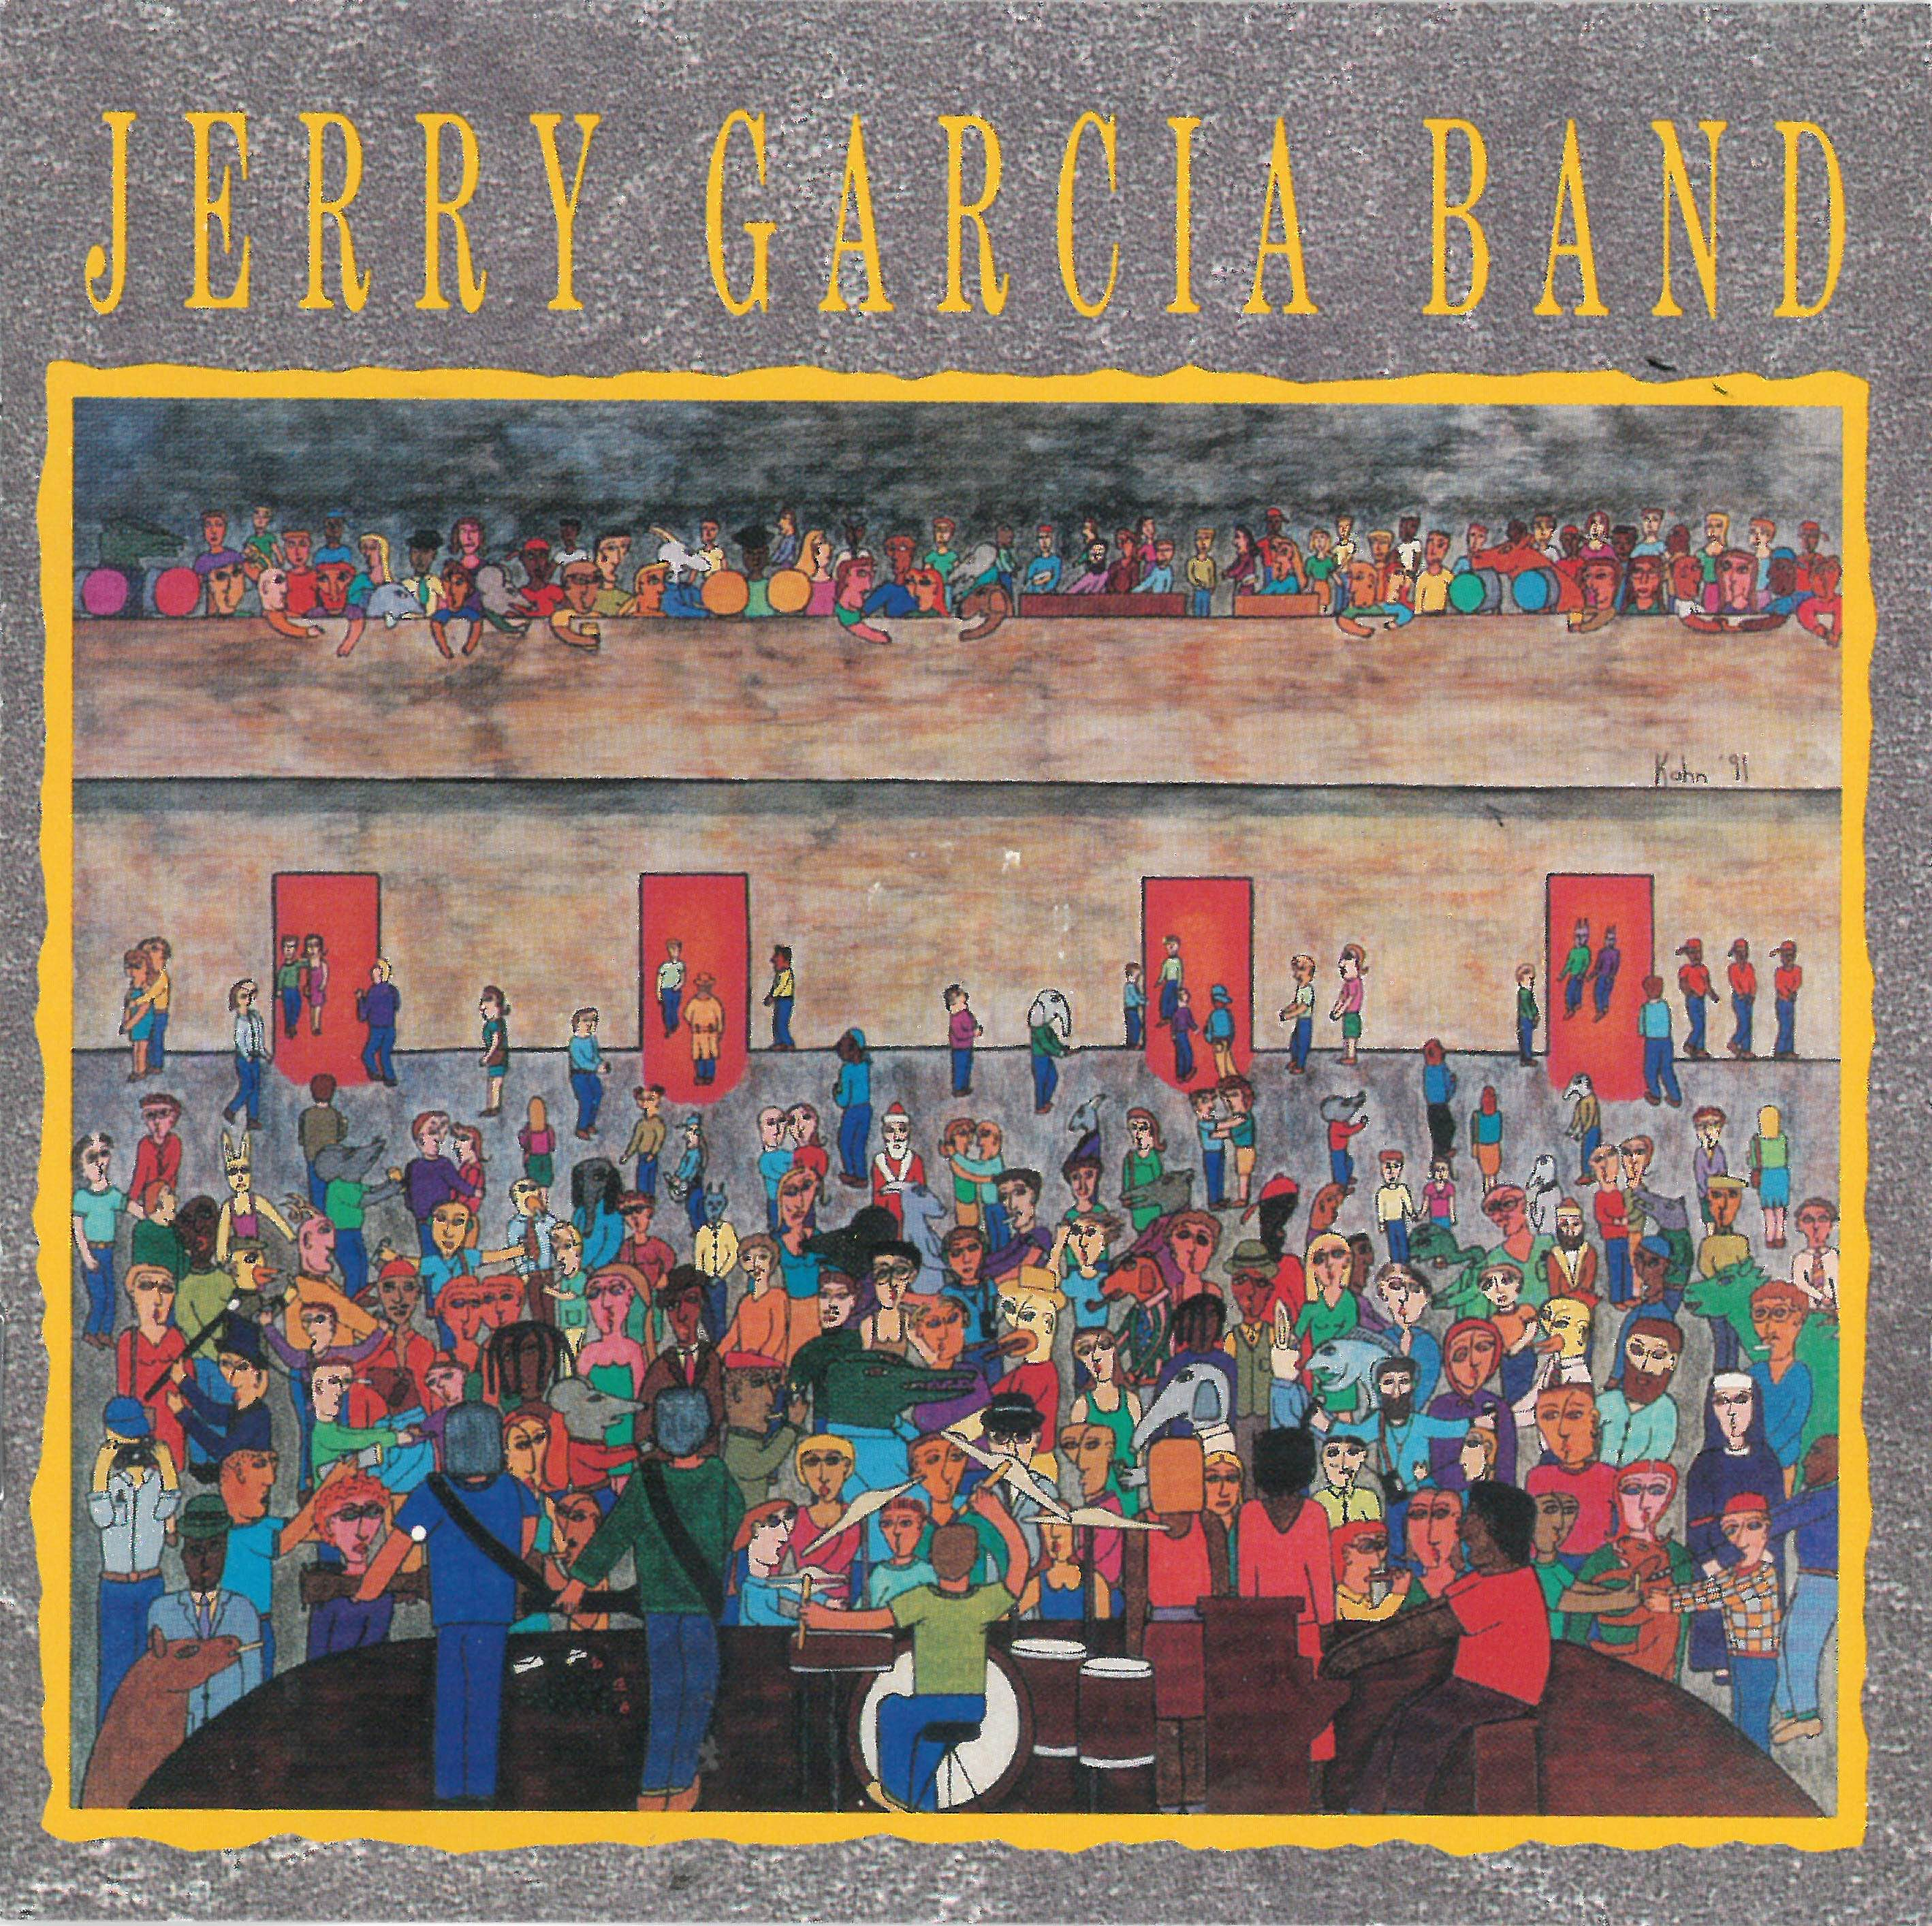 Jerry Garcia Band - Jerry Garcia Band (30th Anniversary)  [RSD Drops 2021]